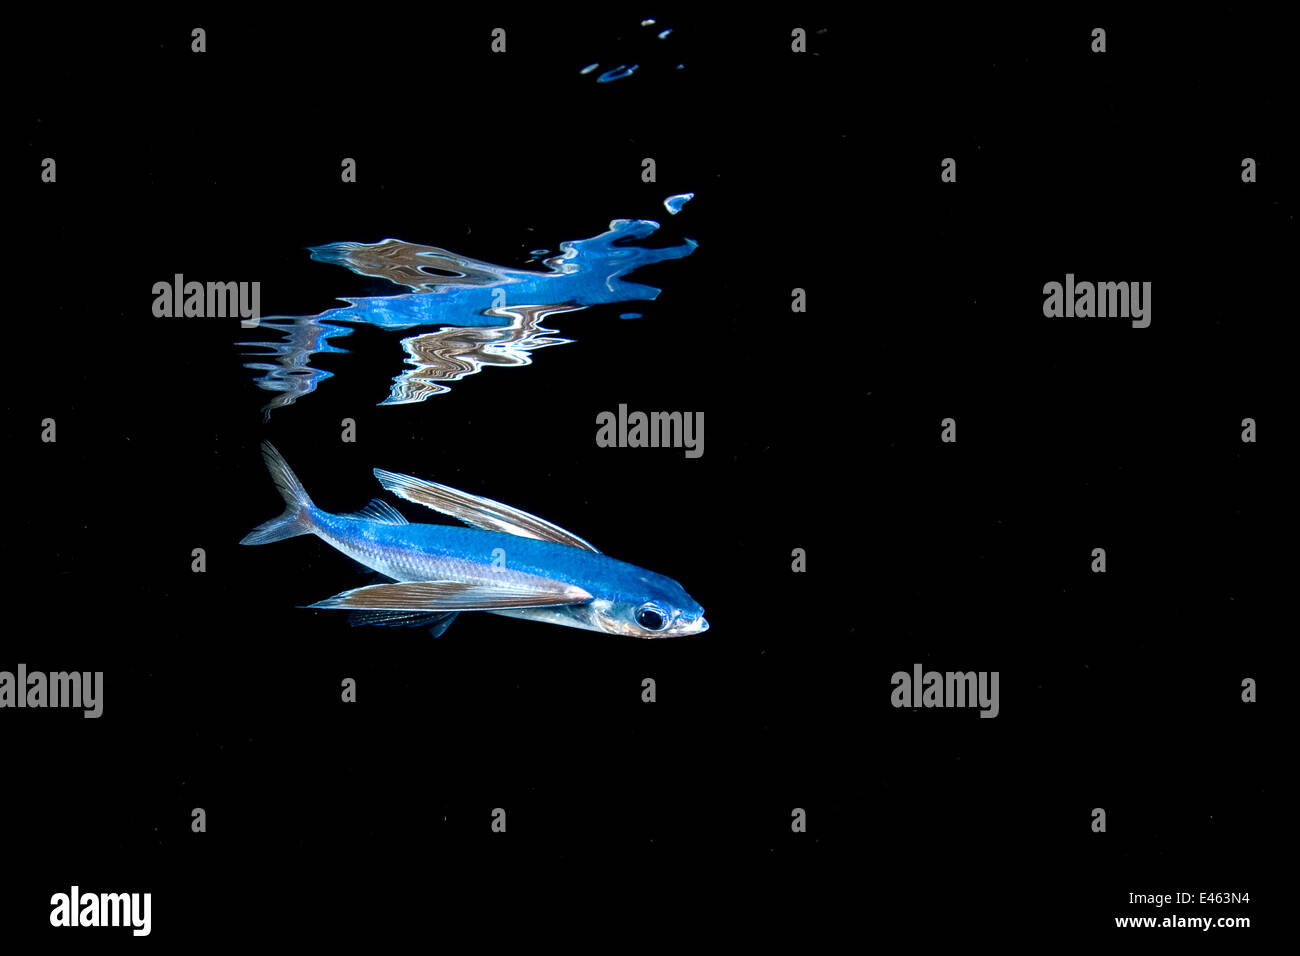 Mirrorwing flying fish (Hirundichthys speculiger) mirrored and swimming beneath the surface at night, between Bahamas Stock Photo